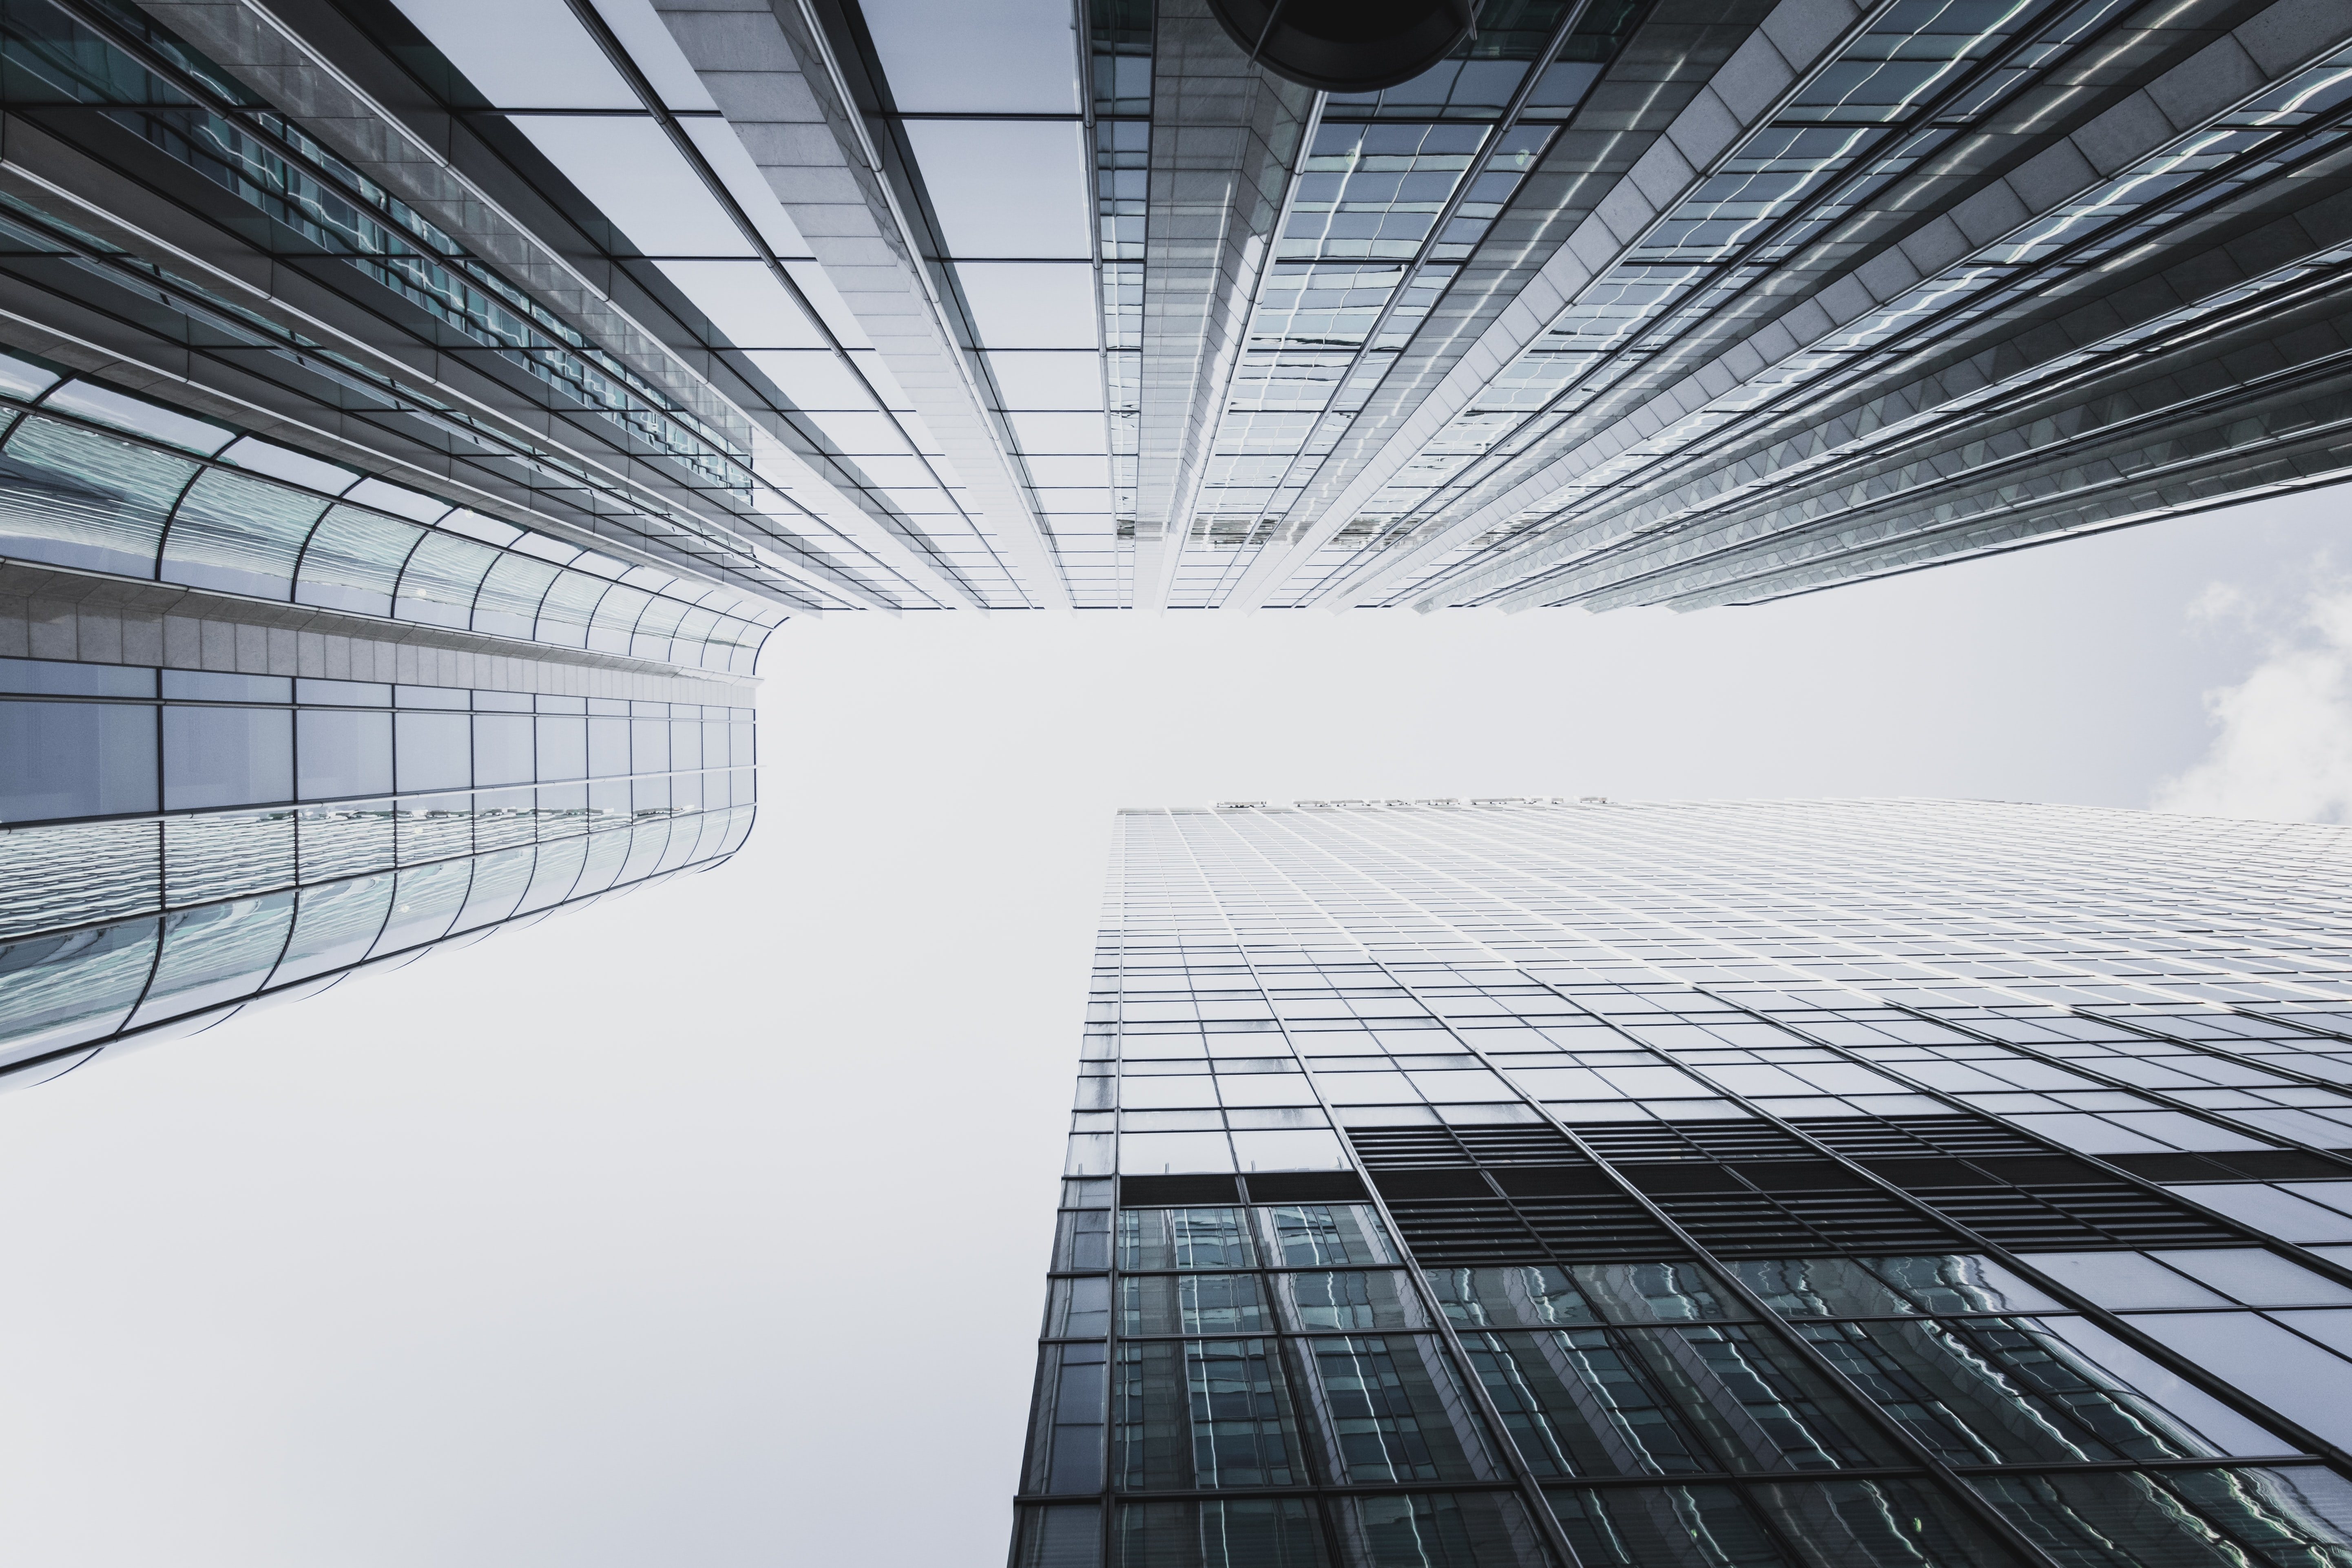 low-angle photography of two high rise curtain wall buildings under white clouds at daytime